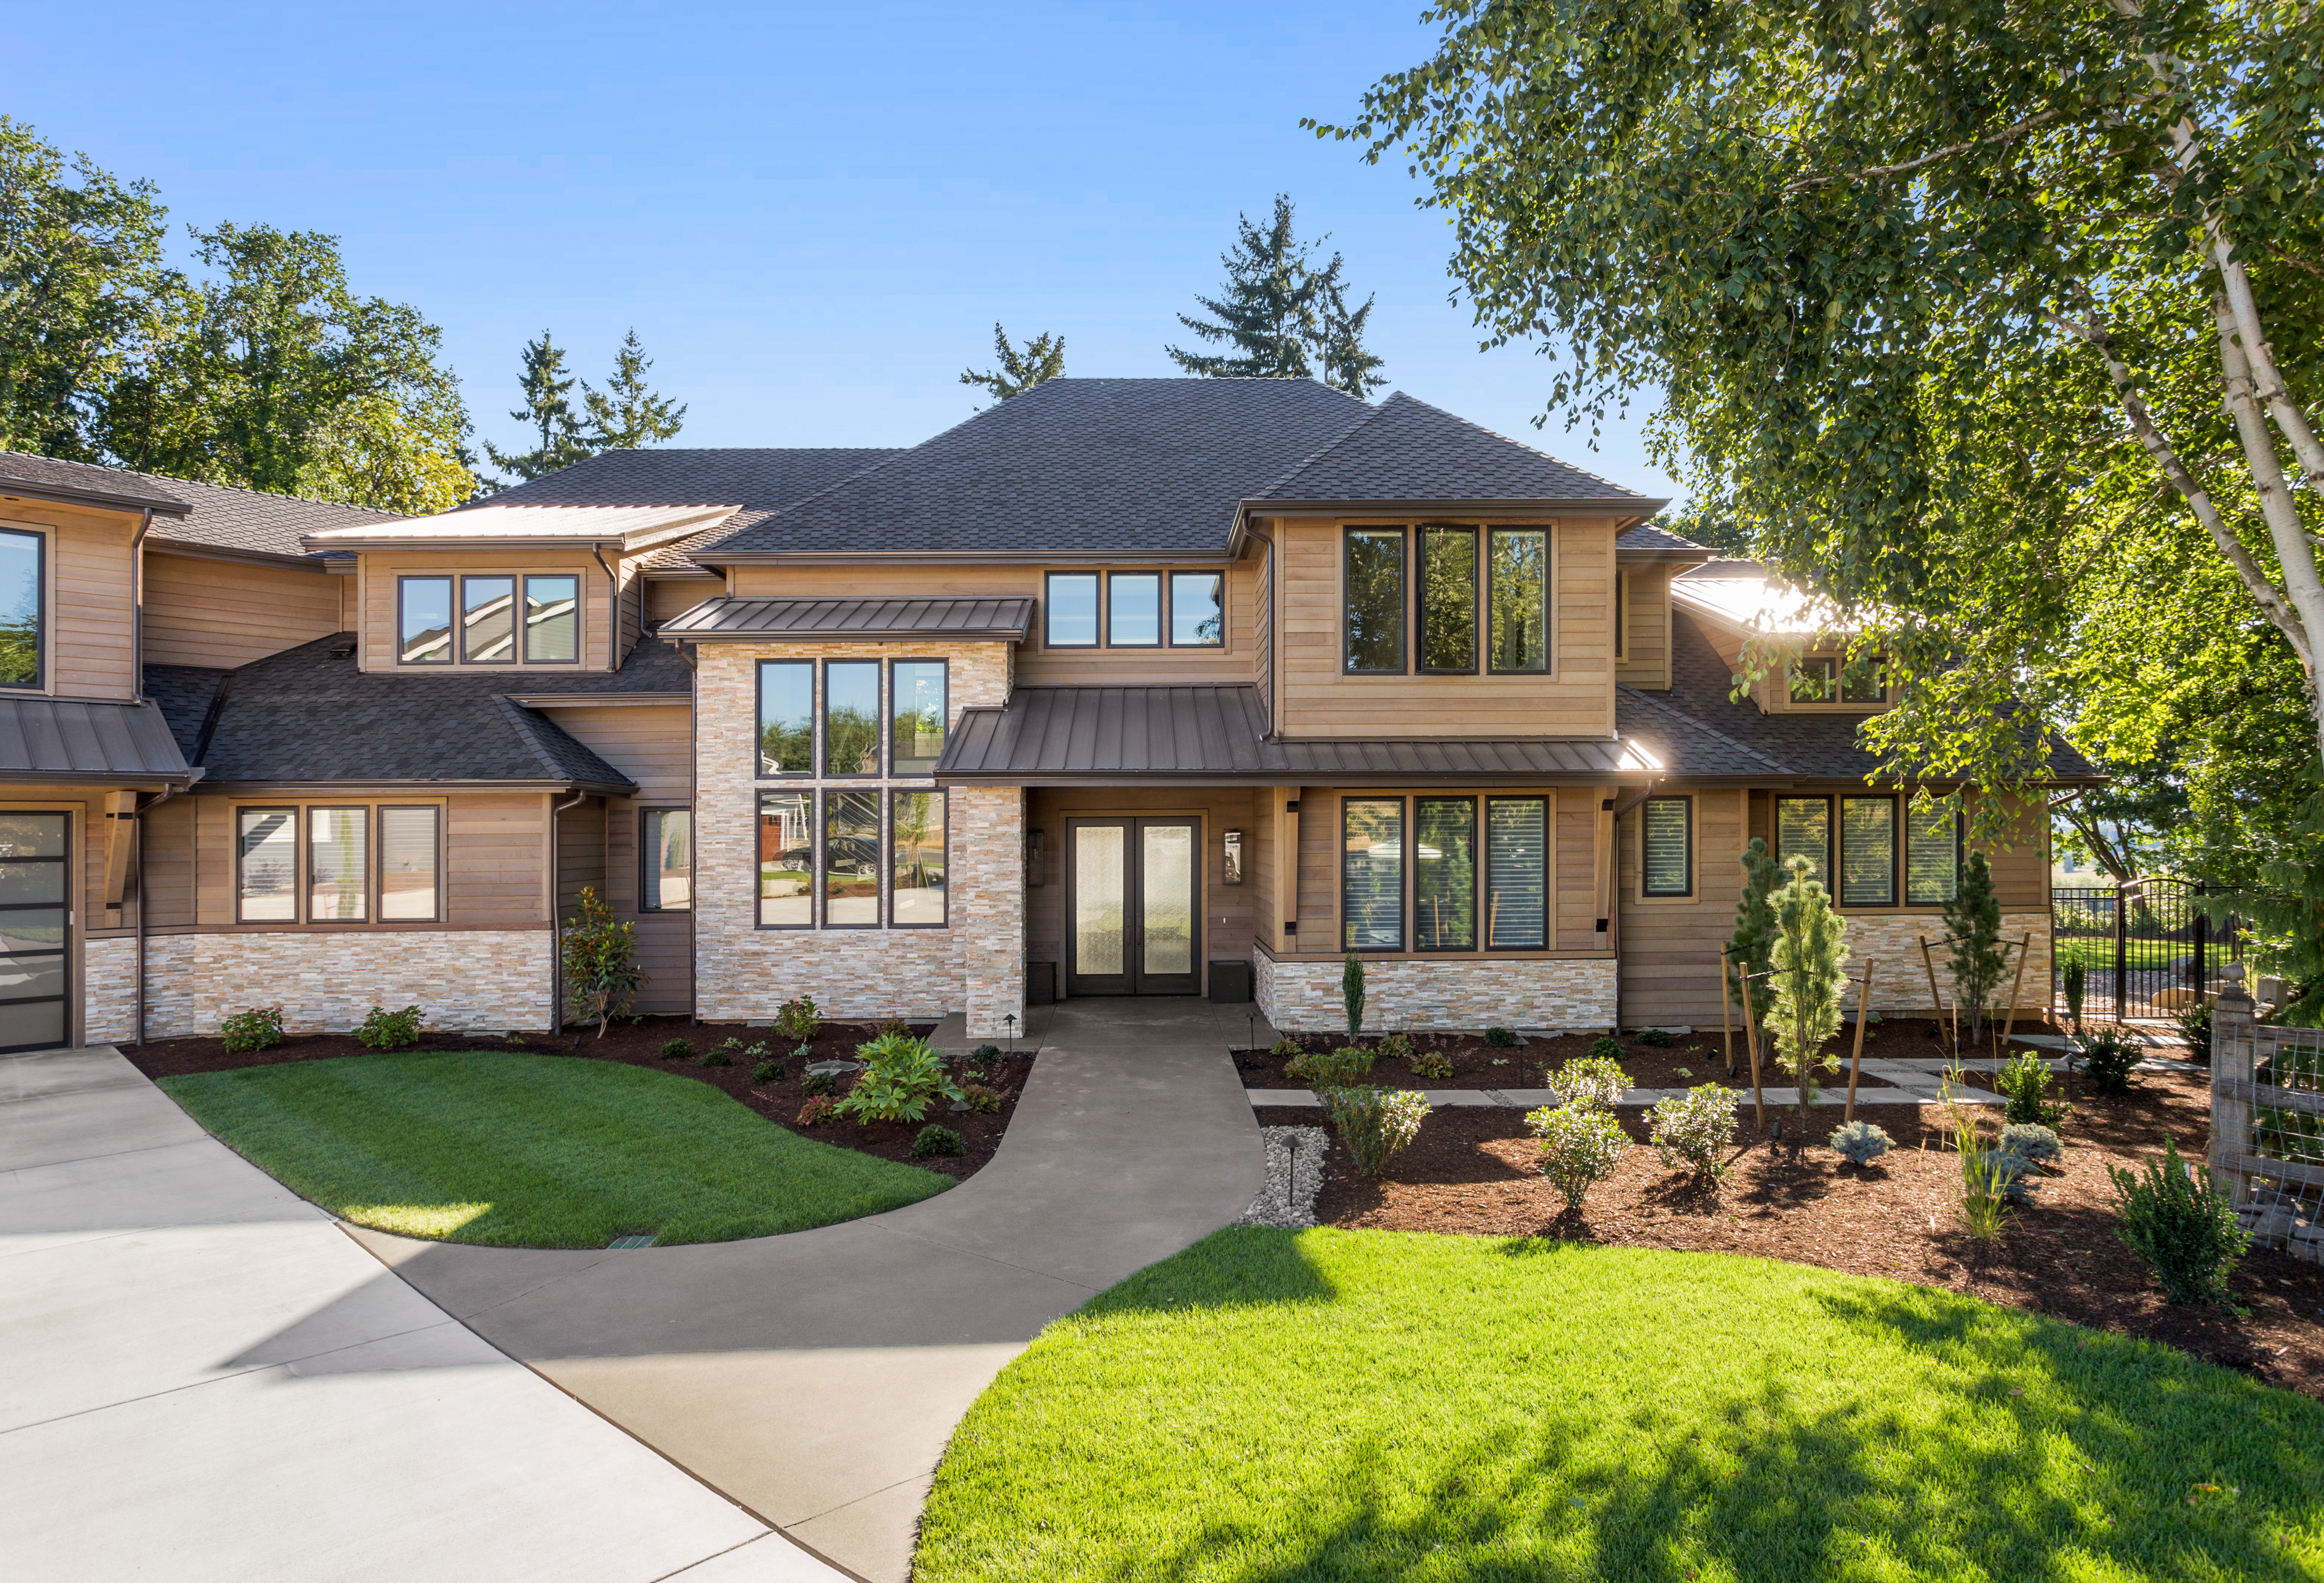 front-lawn-of-modern-home